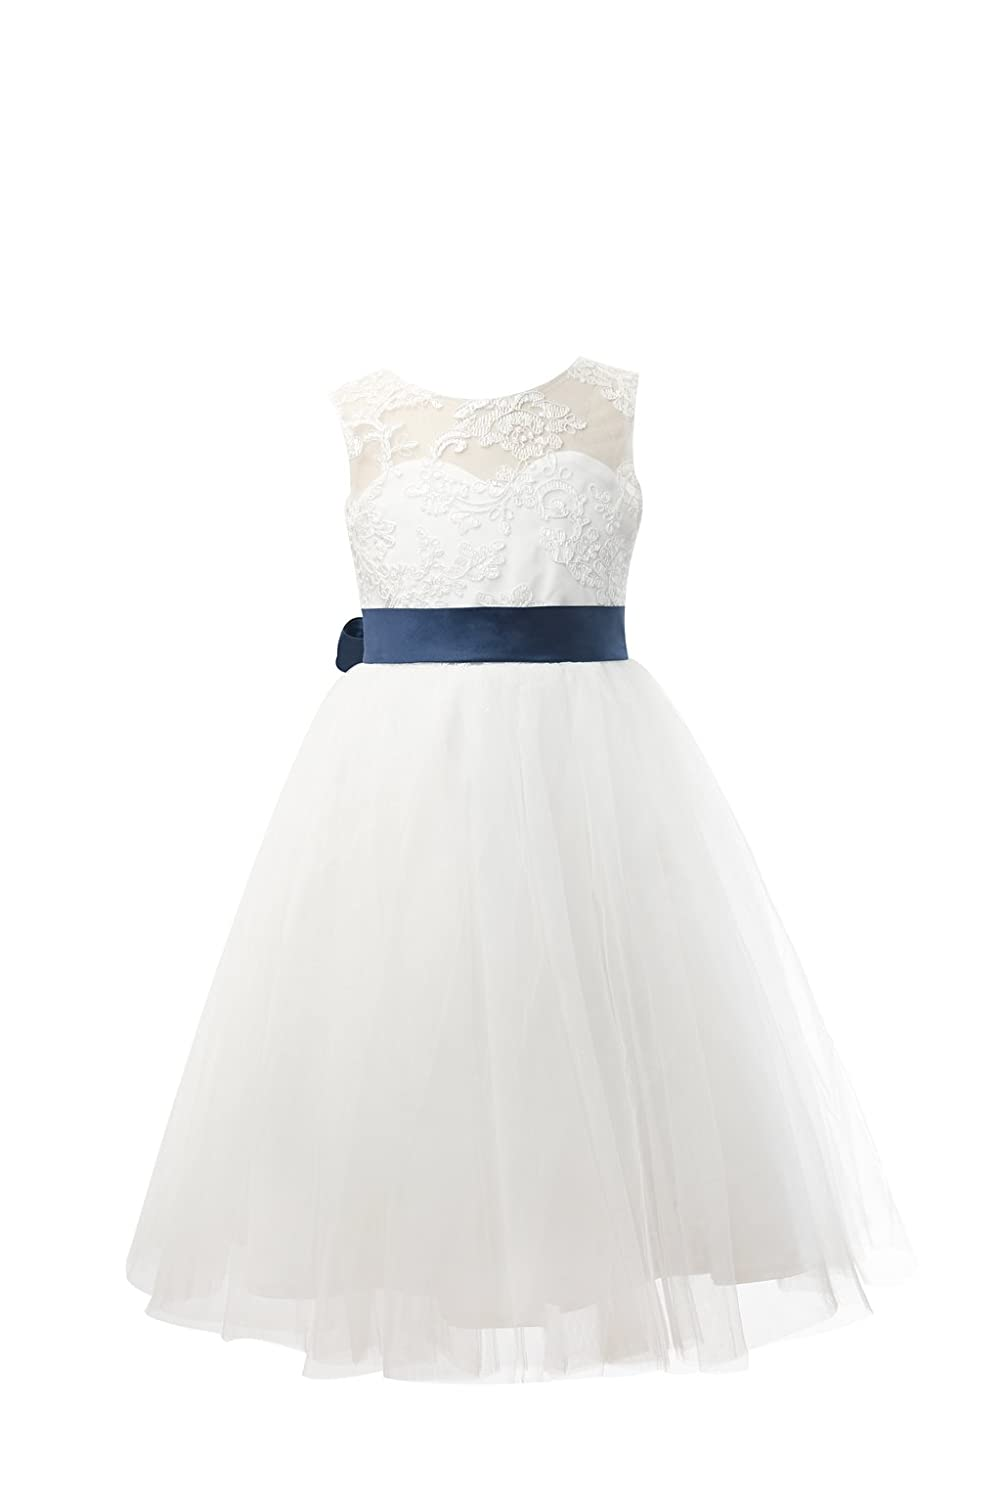 9e4ed84522c ... Flower Girl Dress Junior Bridesmaid Dress. Wholesale Price 34.99.  Material  Lace